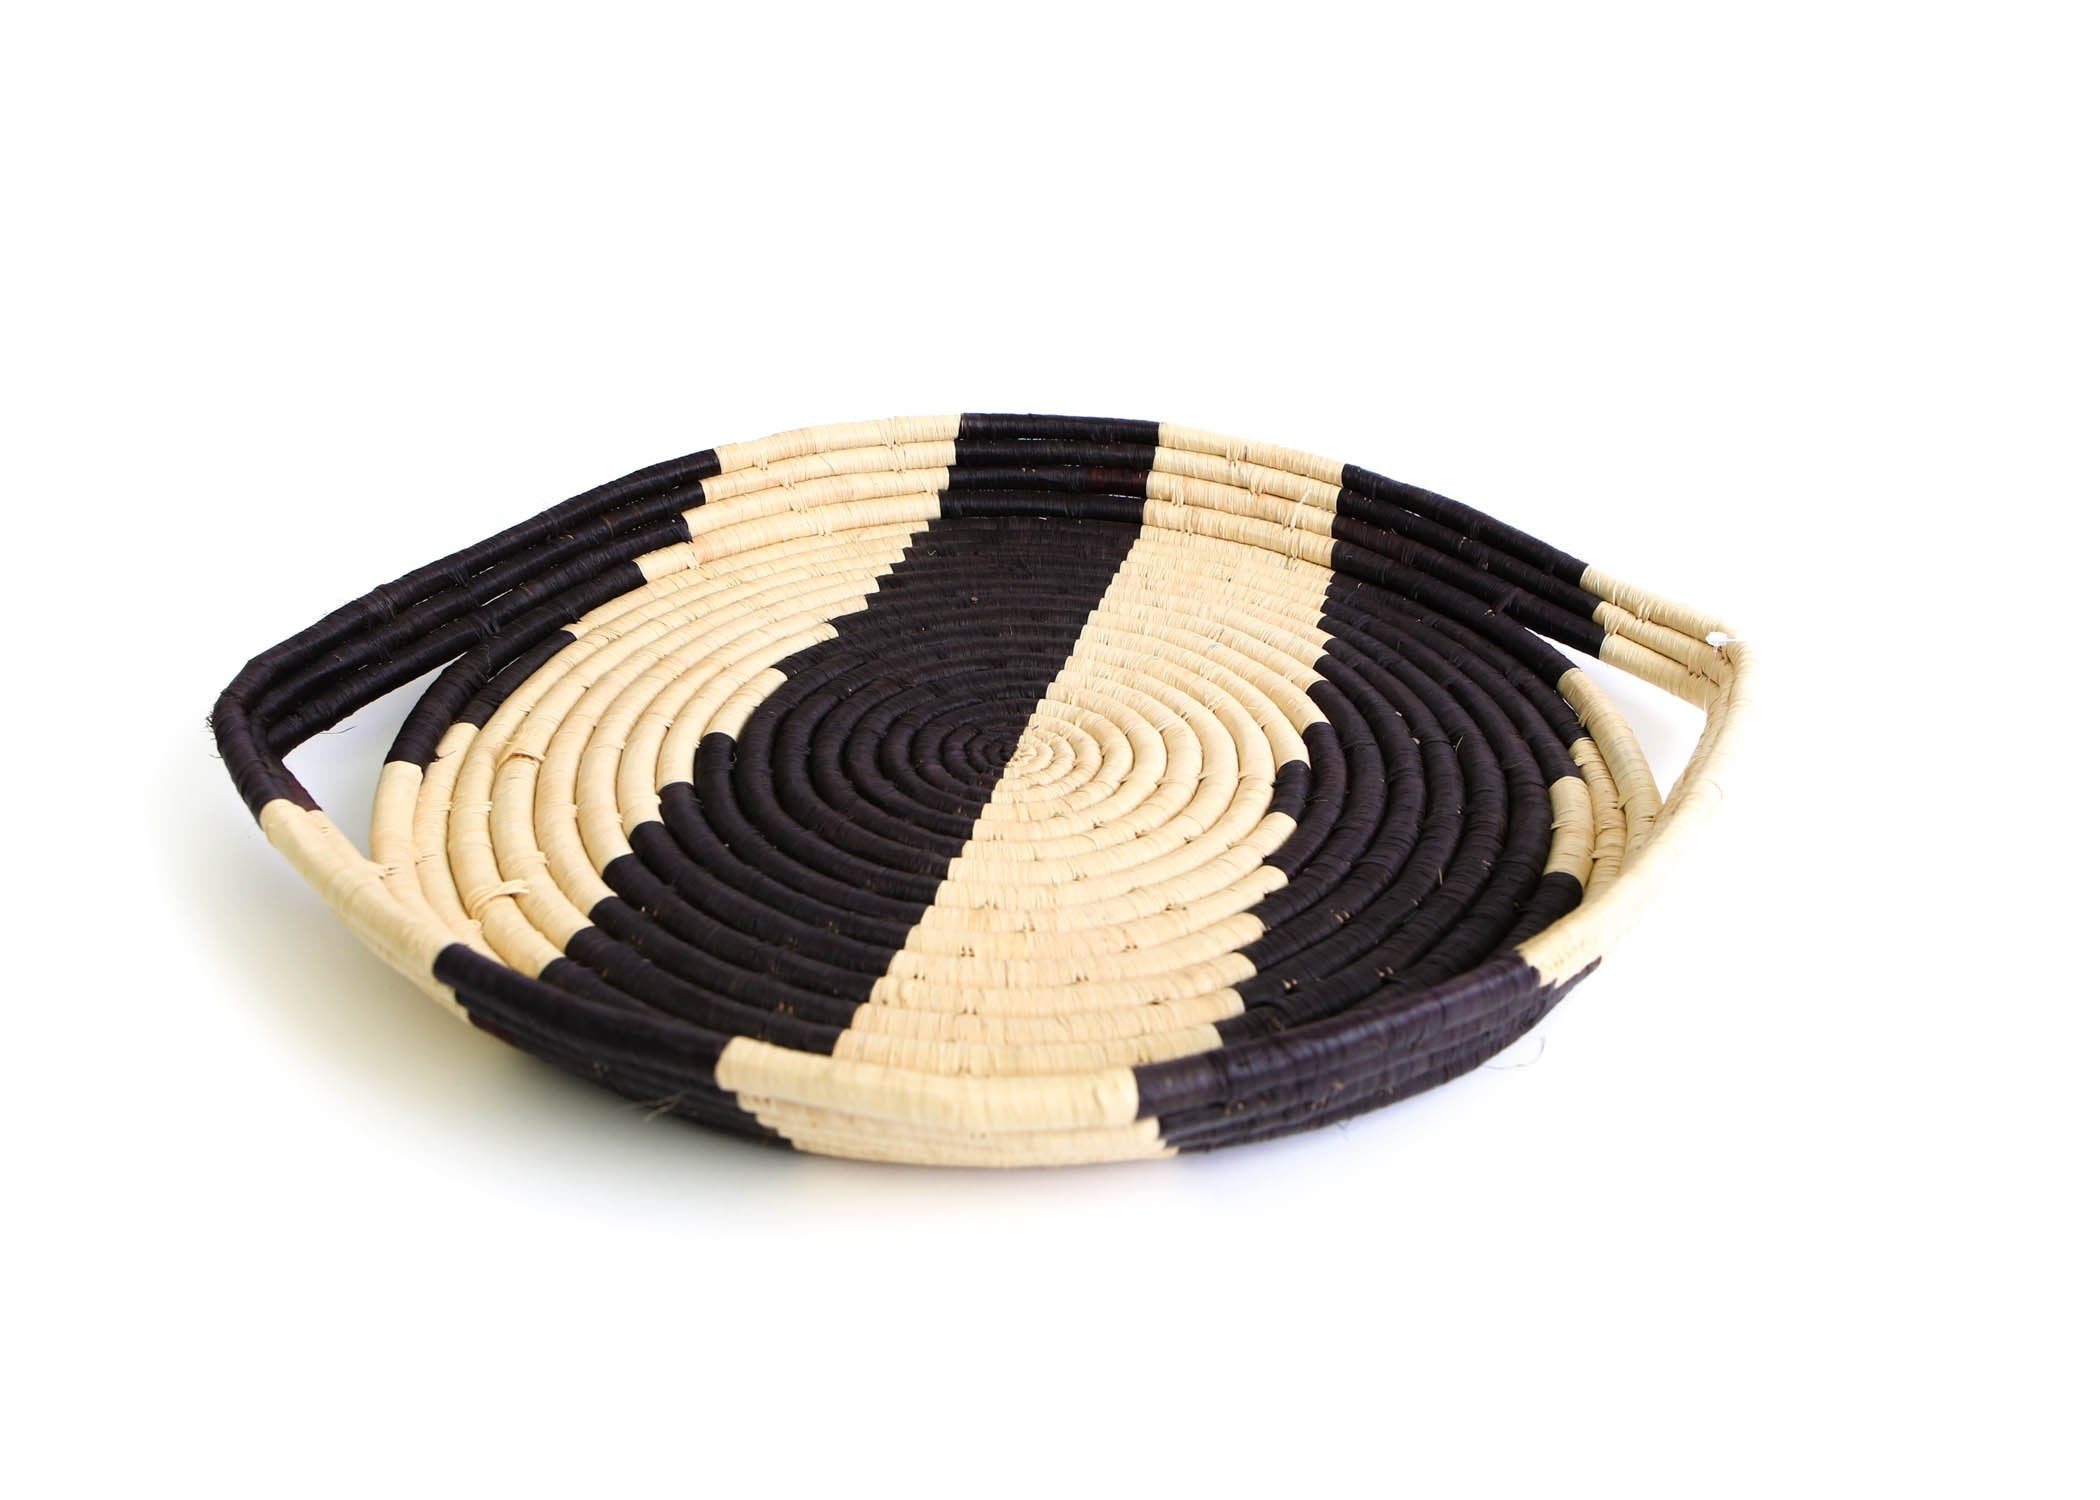 Black Striped Serving Tray - KAZI - Artisan made high quality home decor and wall art